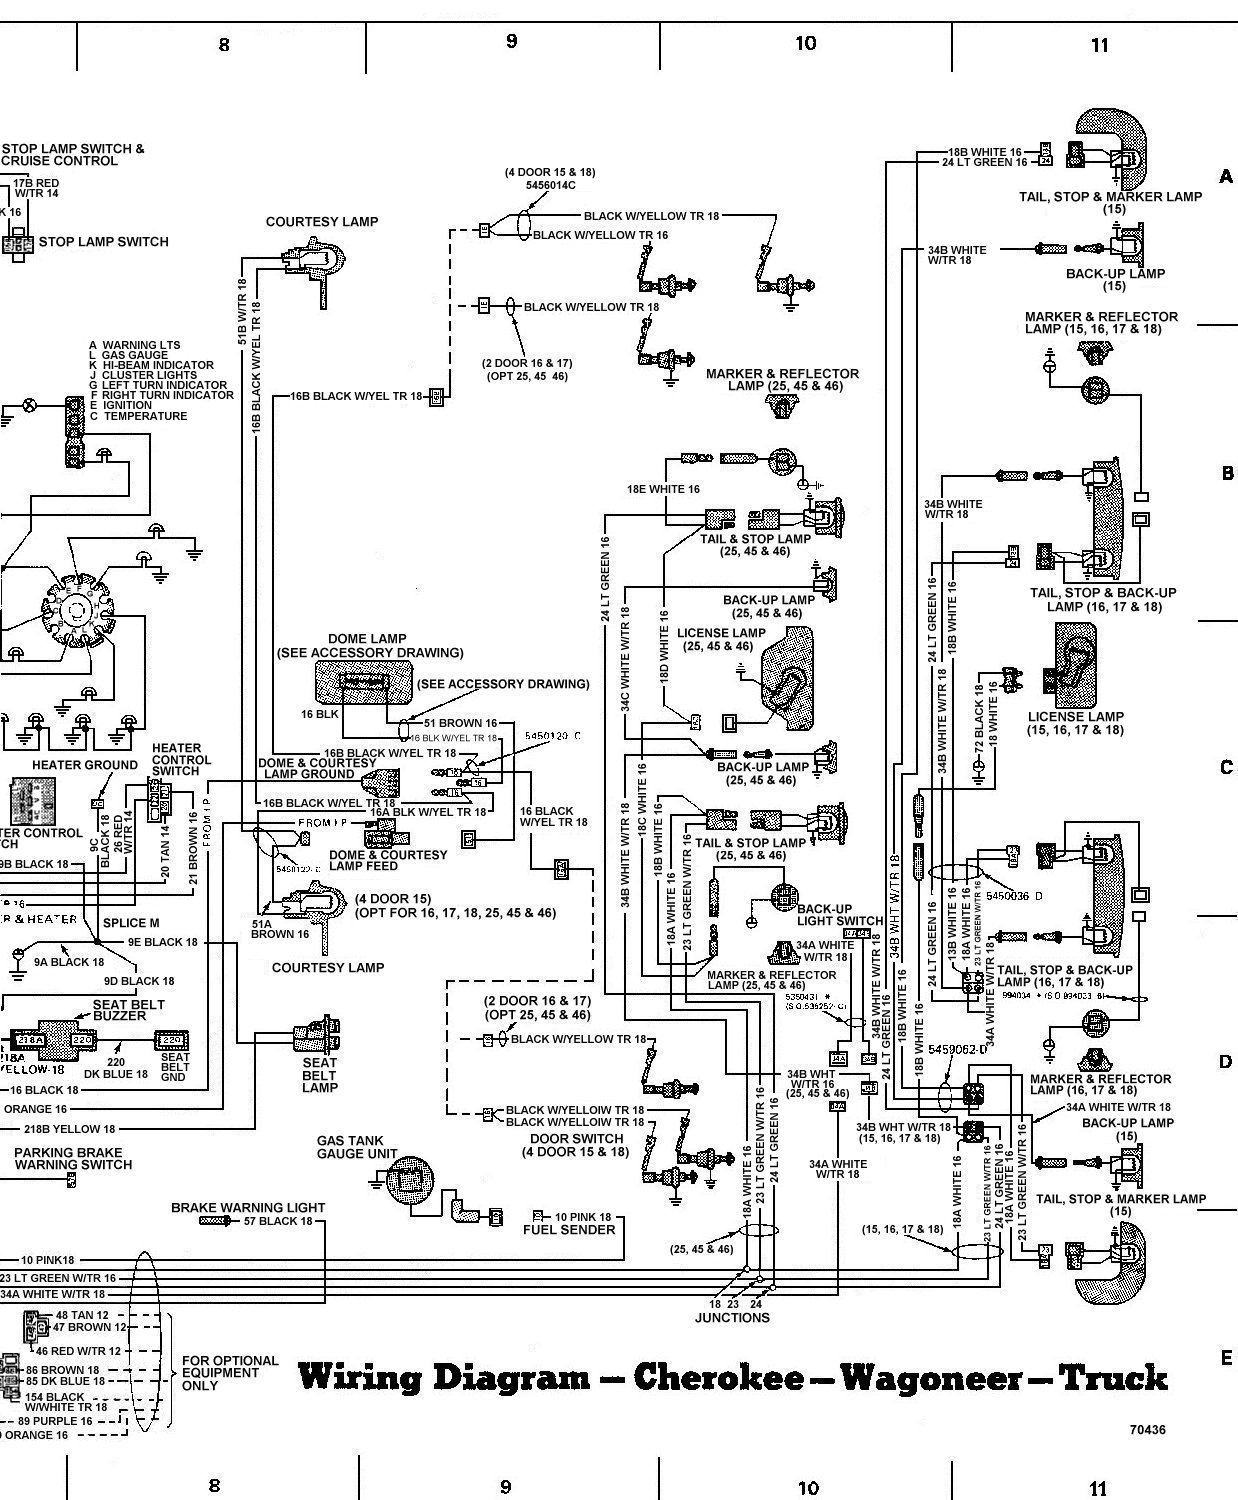 [DIAGRAM_38DE]  Tom 'Oljeep' Collins FSJ Wiring Page | Wiring Diagram For 87 Grand Wagoneer |  | Oljeep